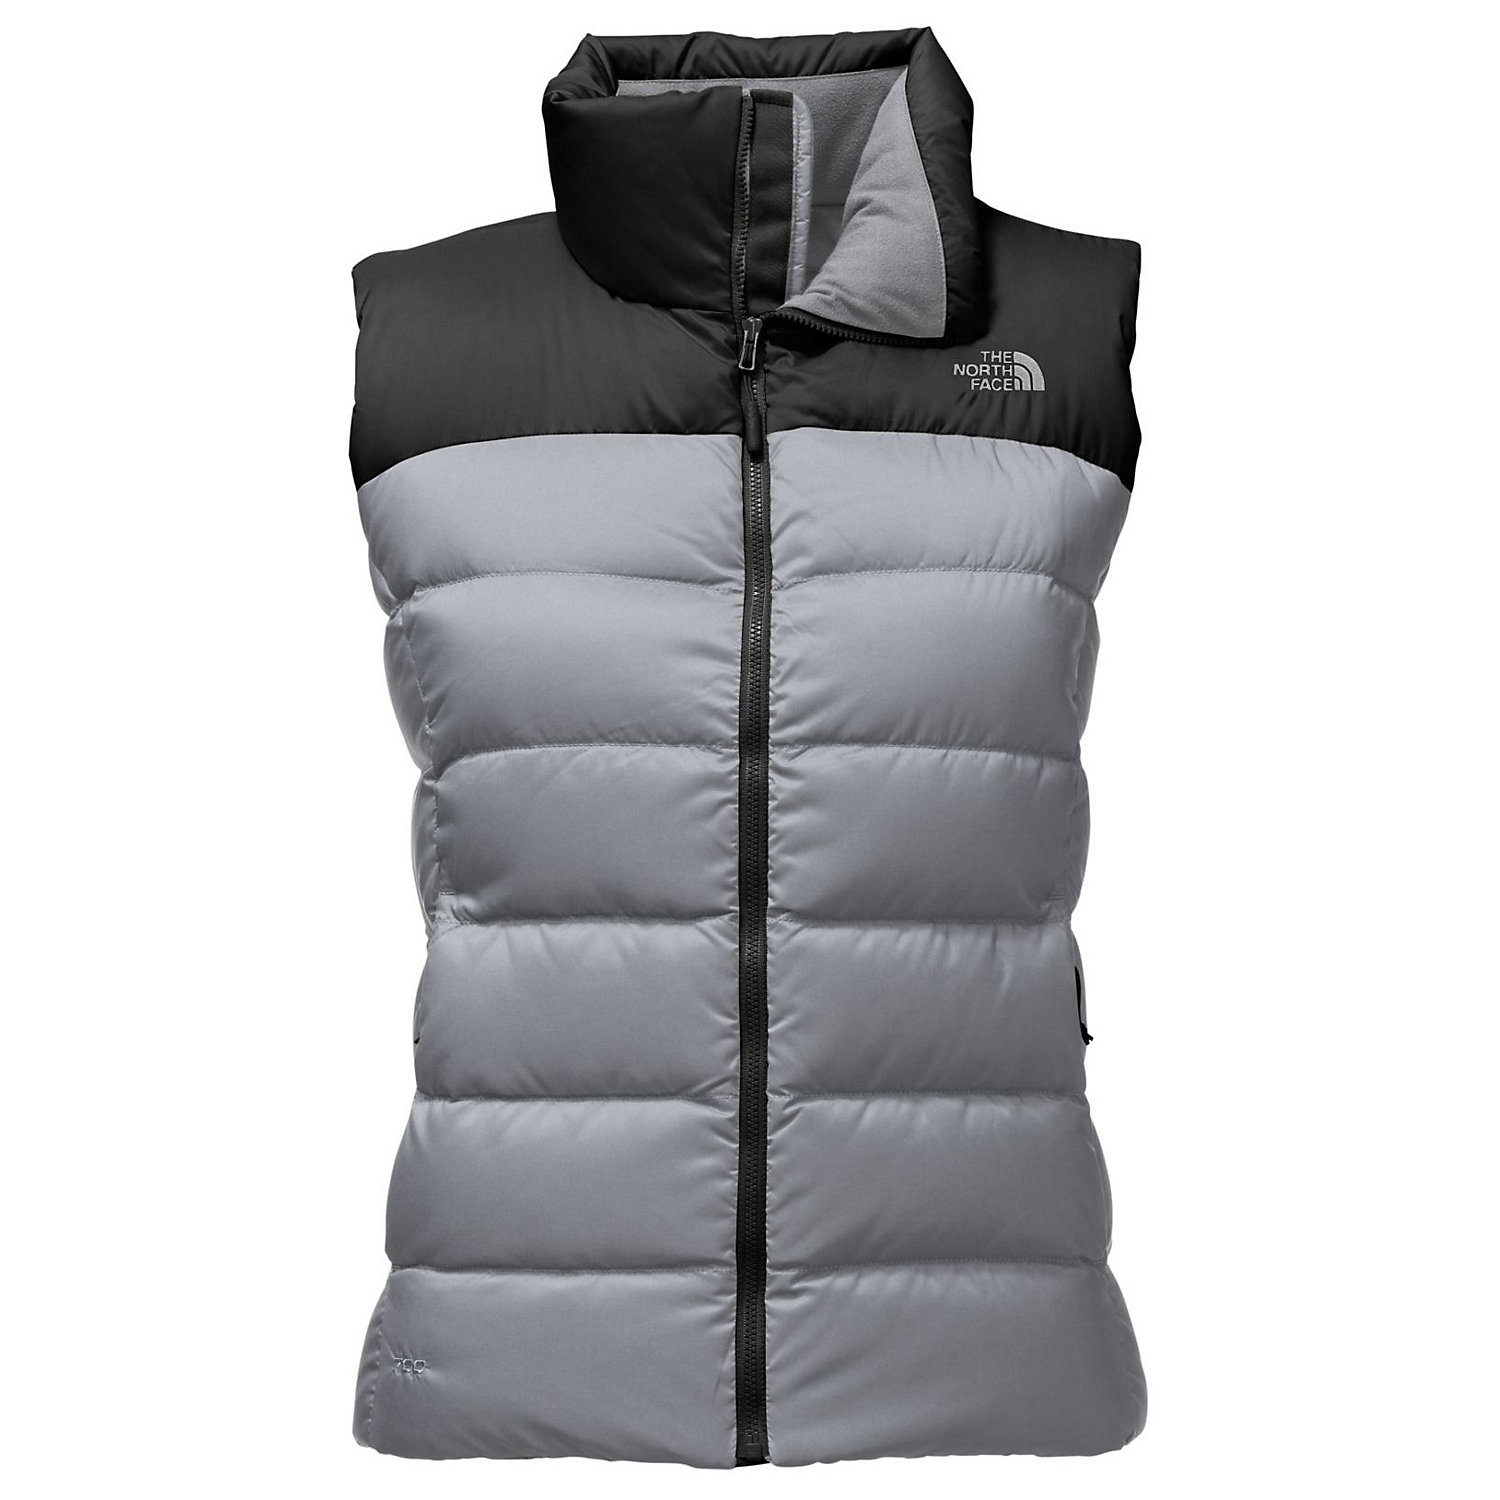 3dc2f5b72156 The North Face Women s Nuptse Vest - Moosejaw